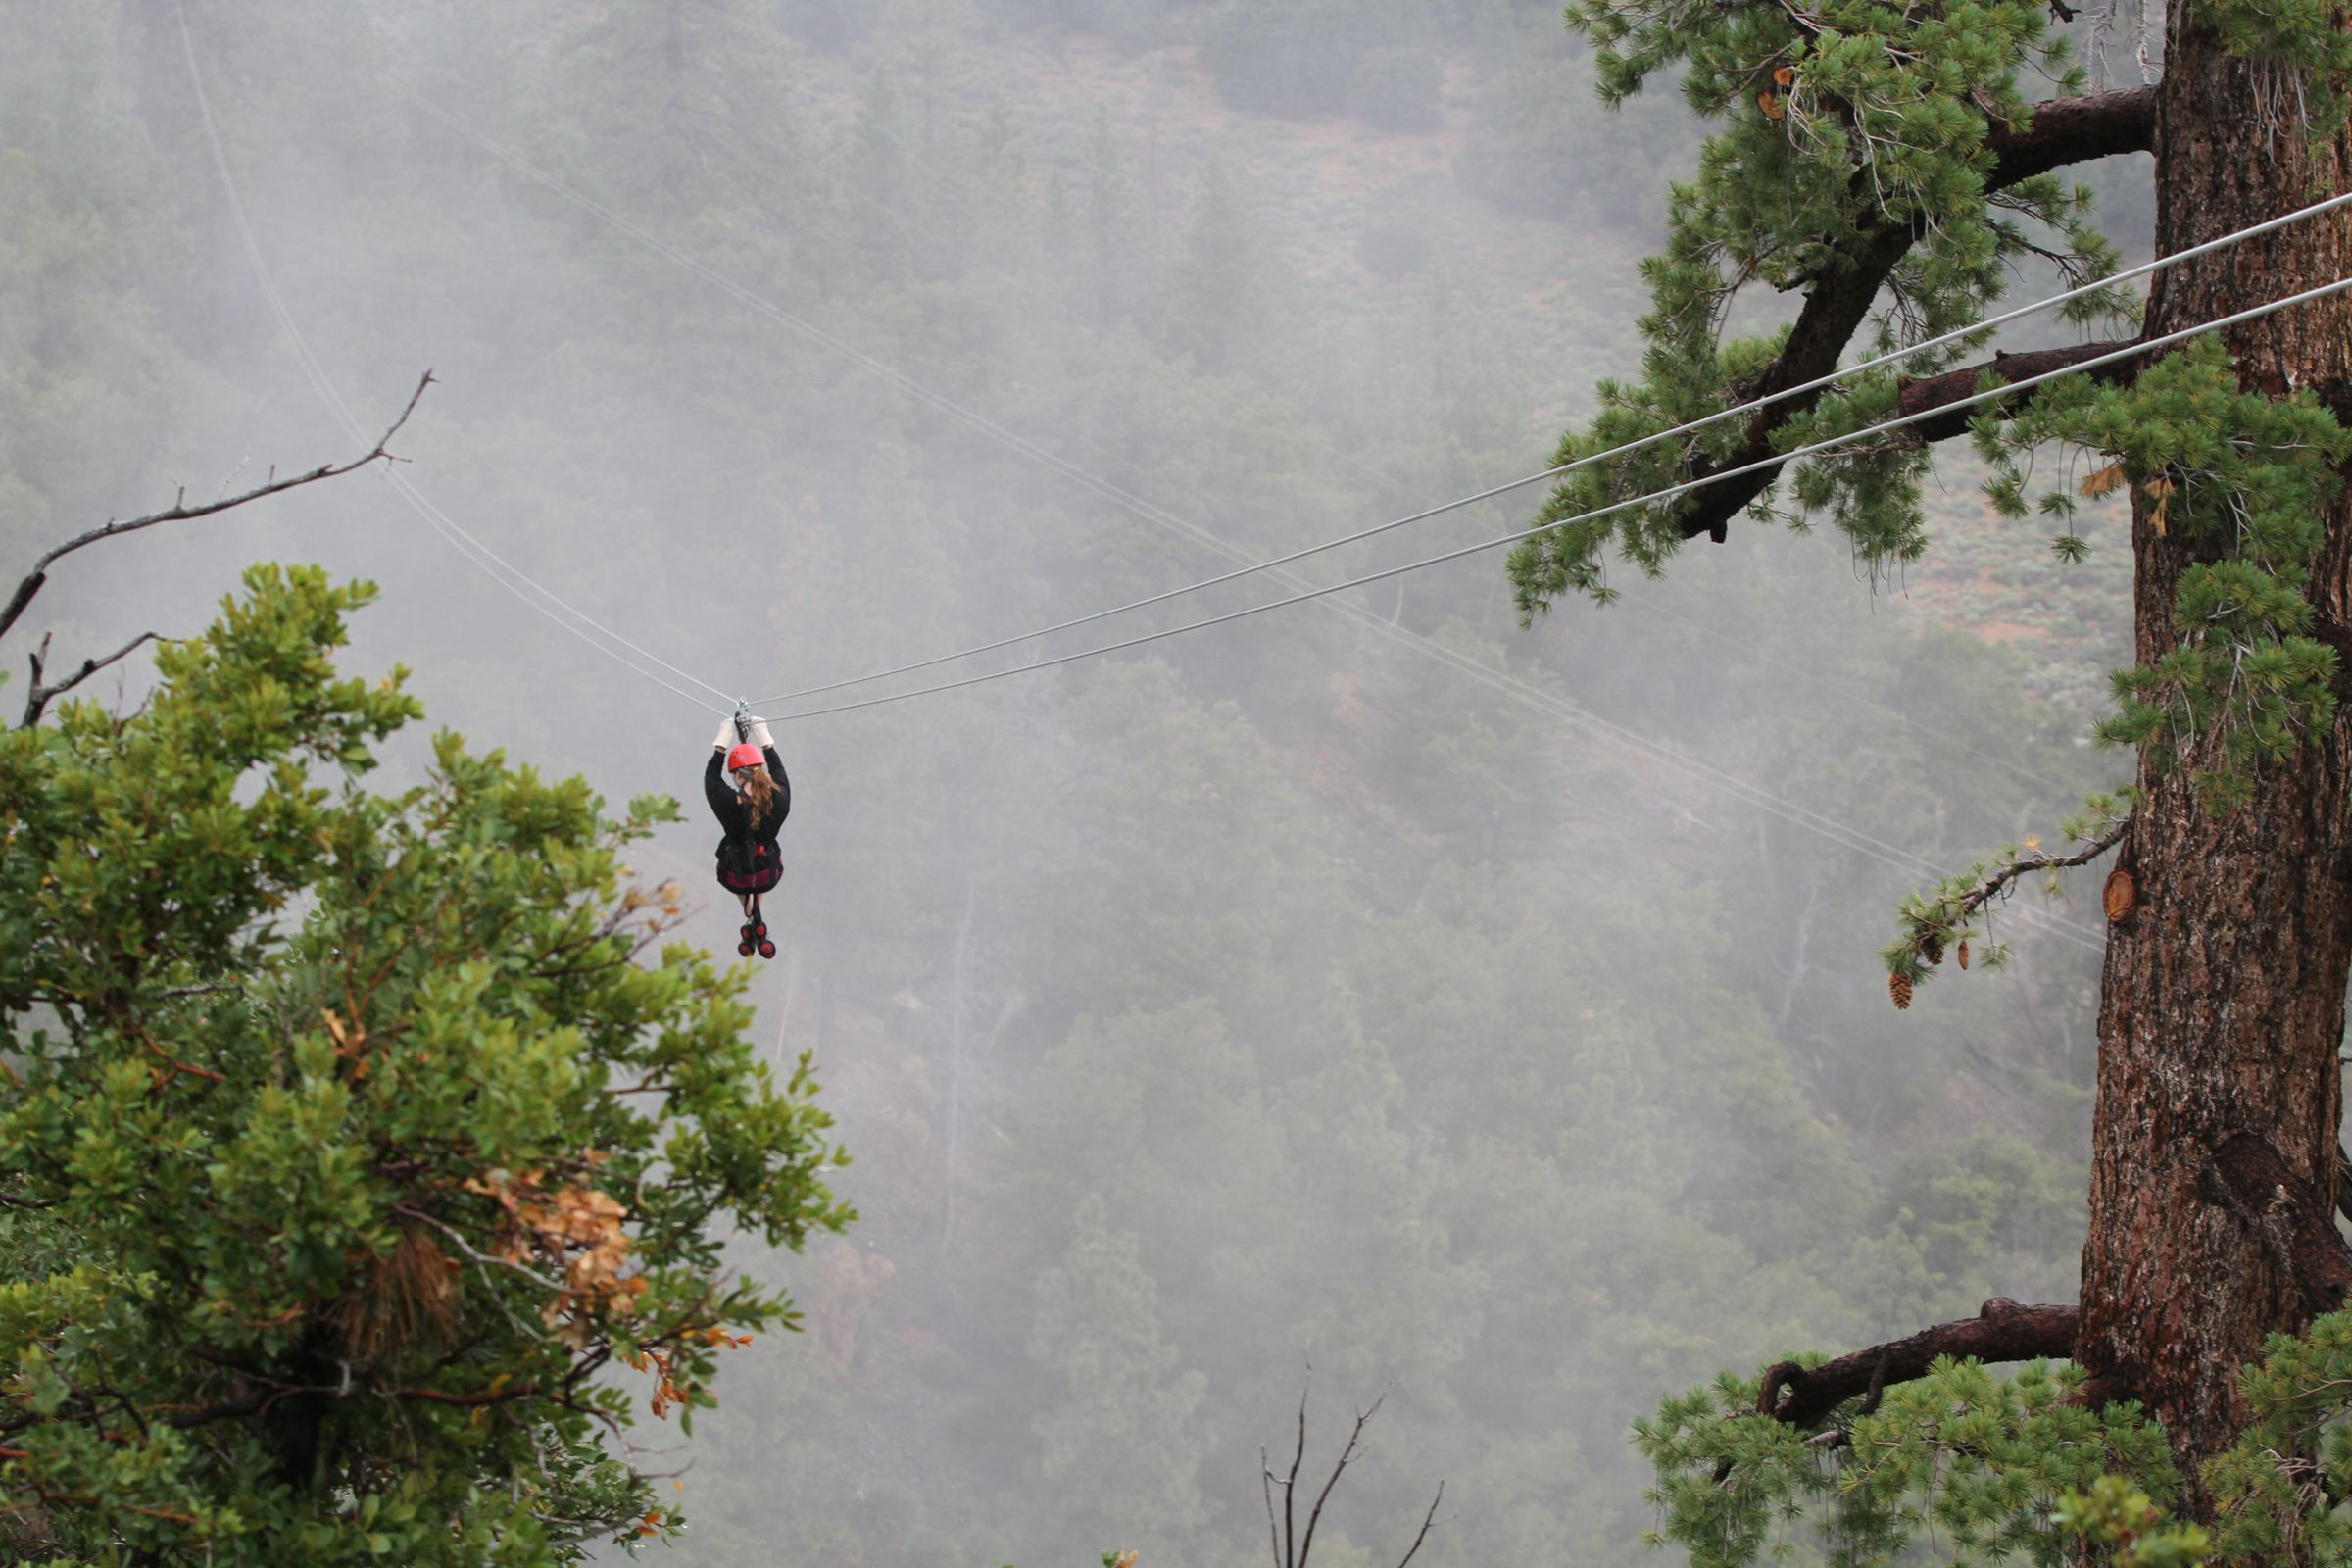 Ziplines And Rope Bridges At Navitat Canopy Adventures Wrightwood California